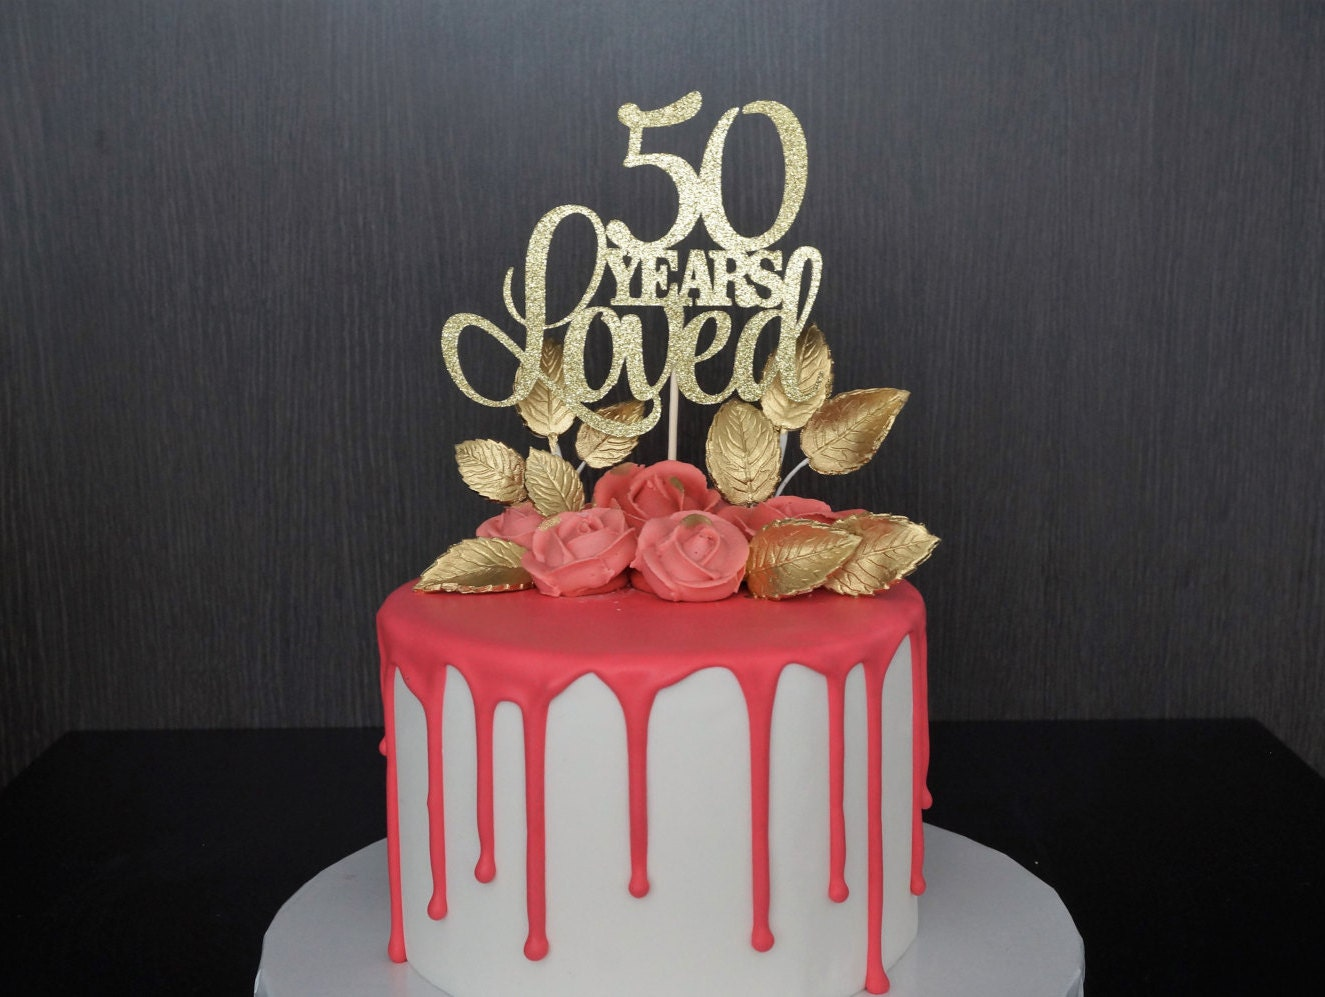 50 Years Loved Cake Topper 50th Birthday Cake Topper Happy